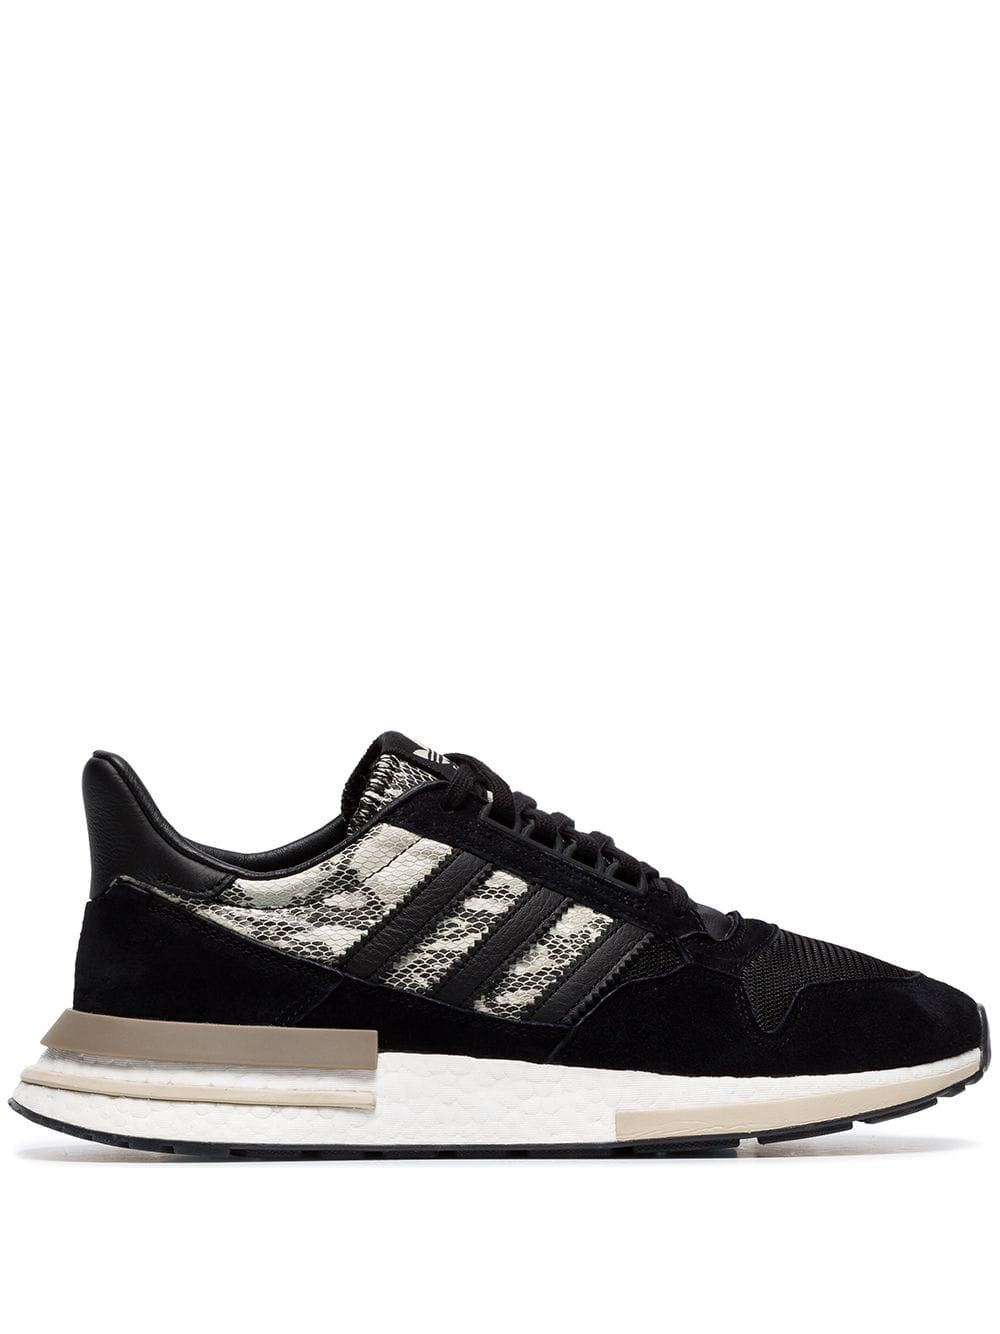 online retailer 78700 e04ce ADIDAS ORIGINALS ADIDAS BLACK ZX 500 SNAKE PRINT SUEDE LOW-TOP SNEAKERS.   adidasoriginals  shoes